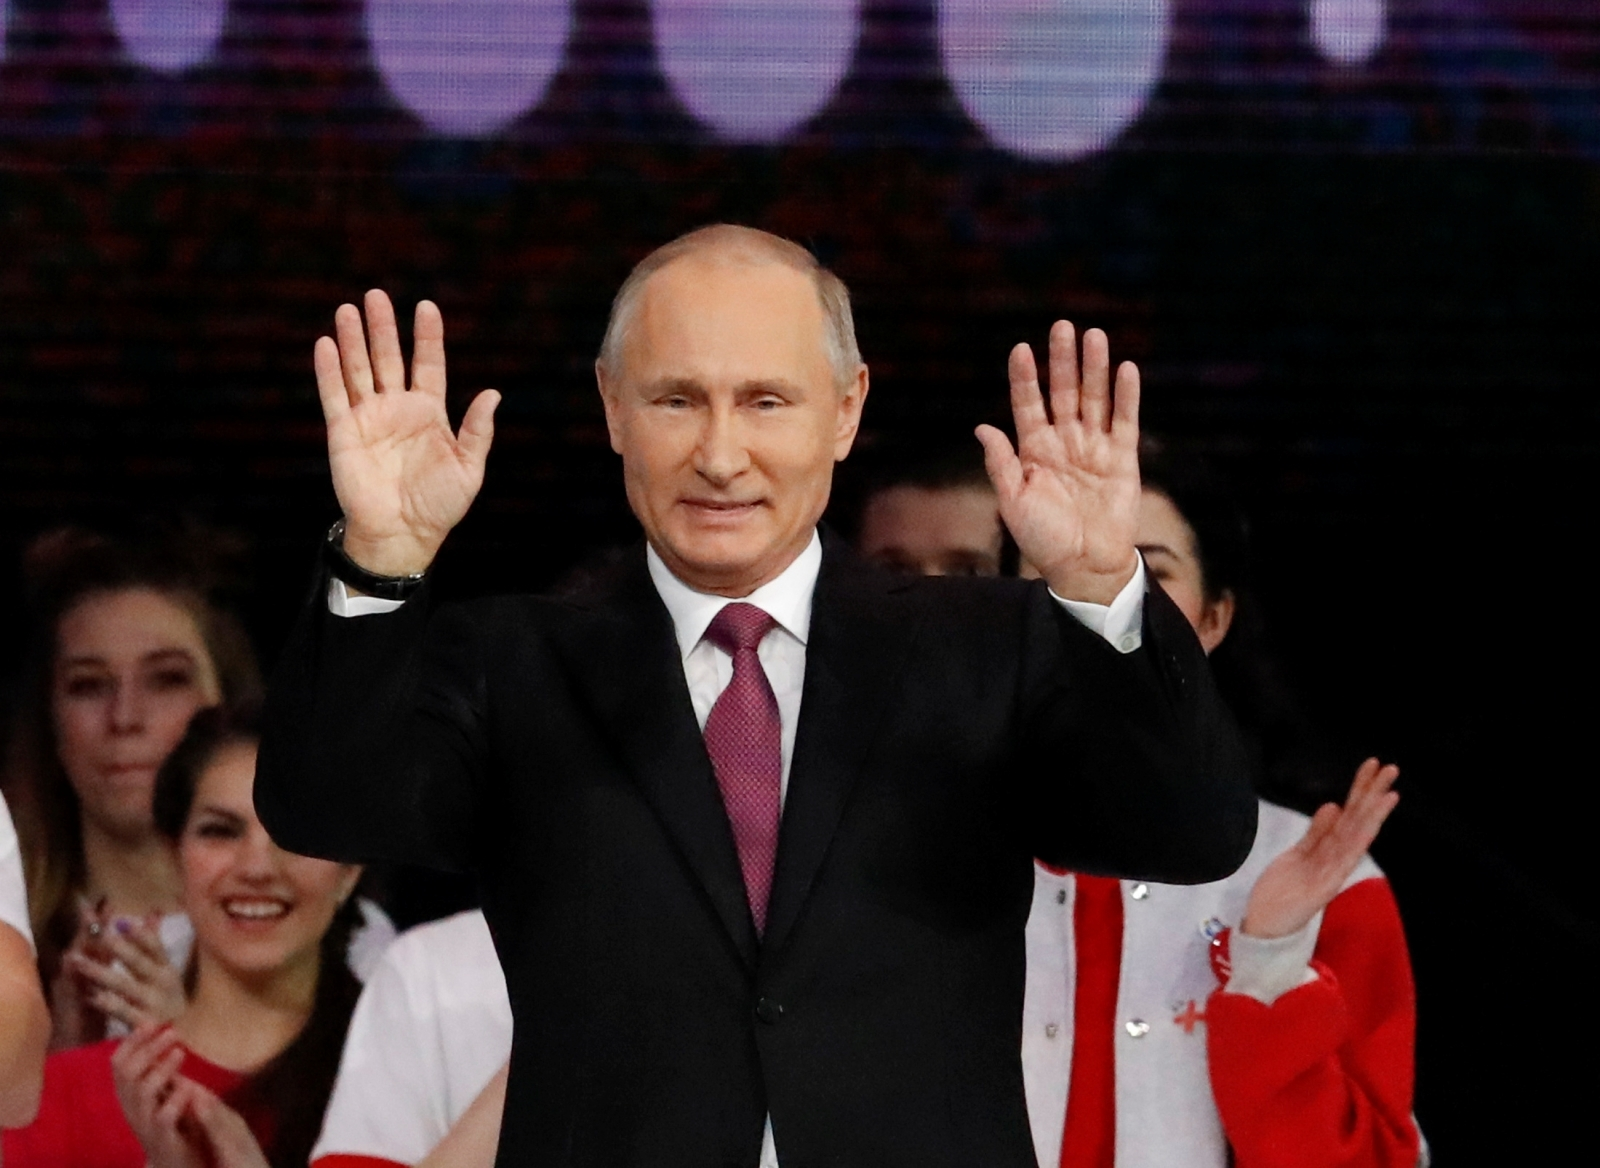 Putin Announces He'll Seek Reelection as Russian President in 2018